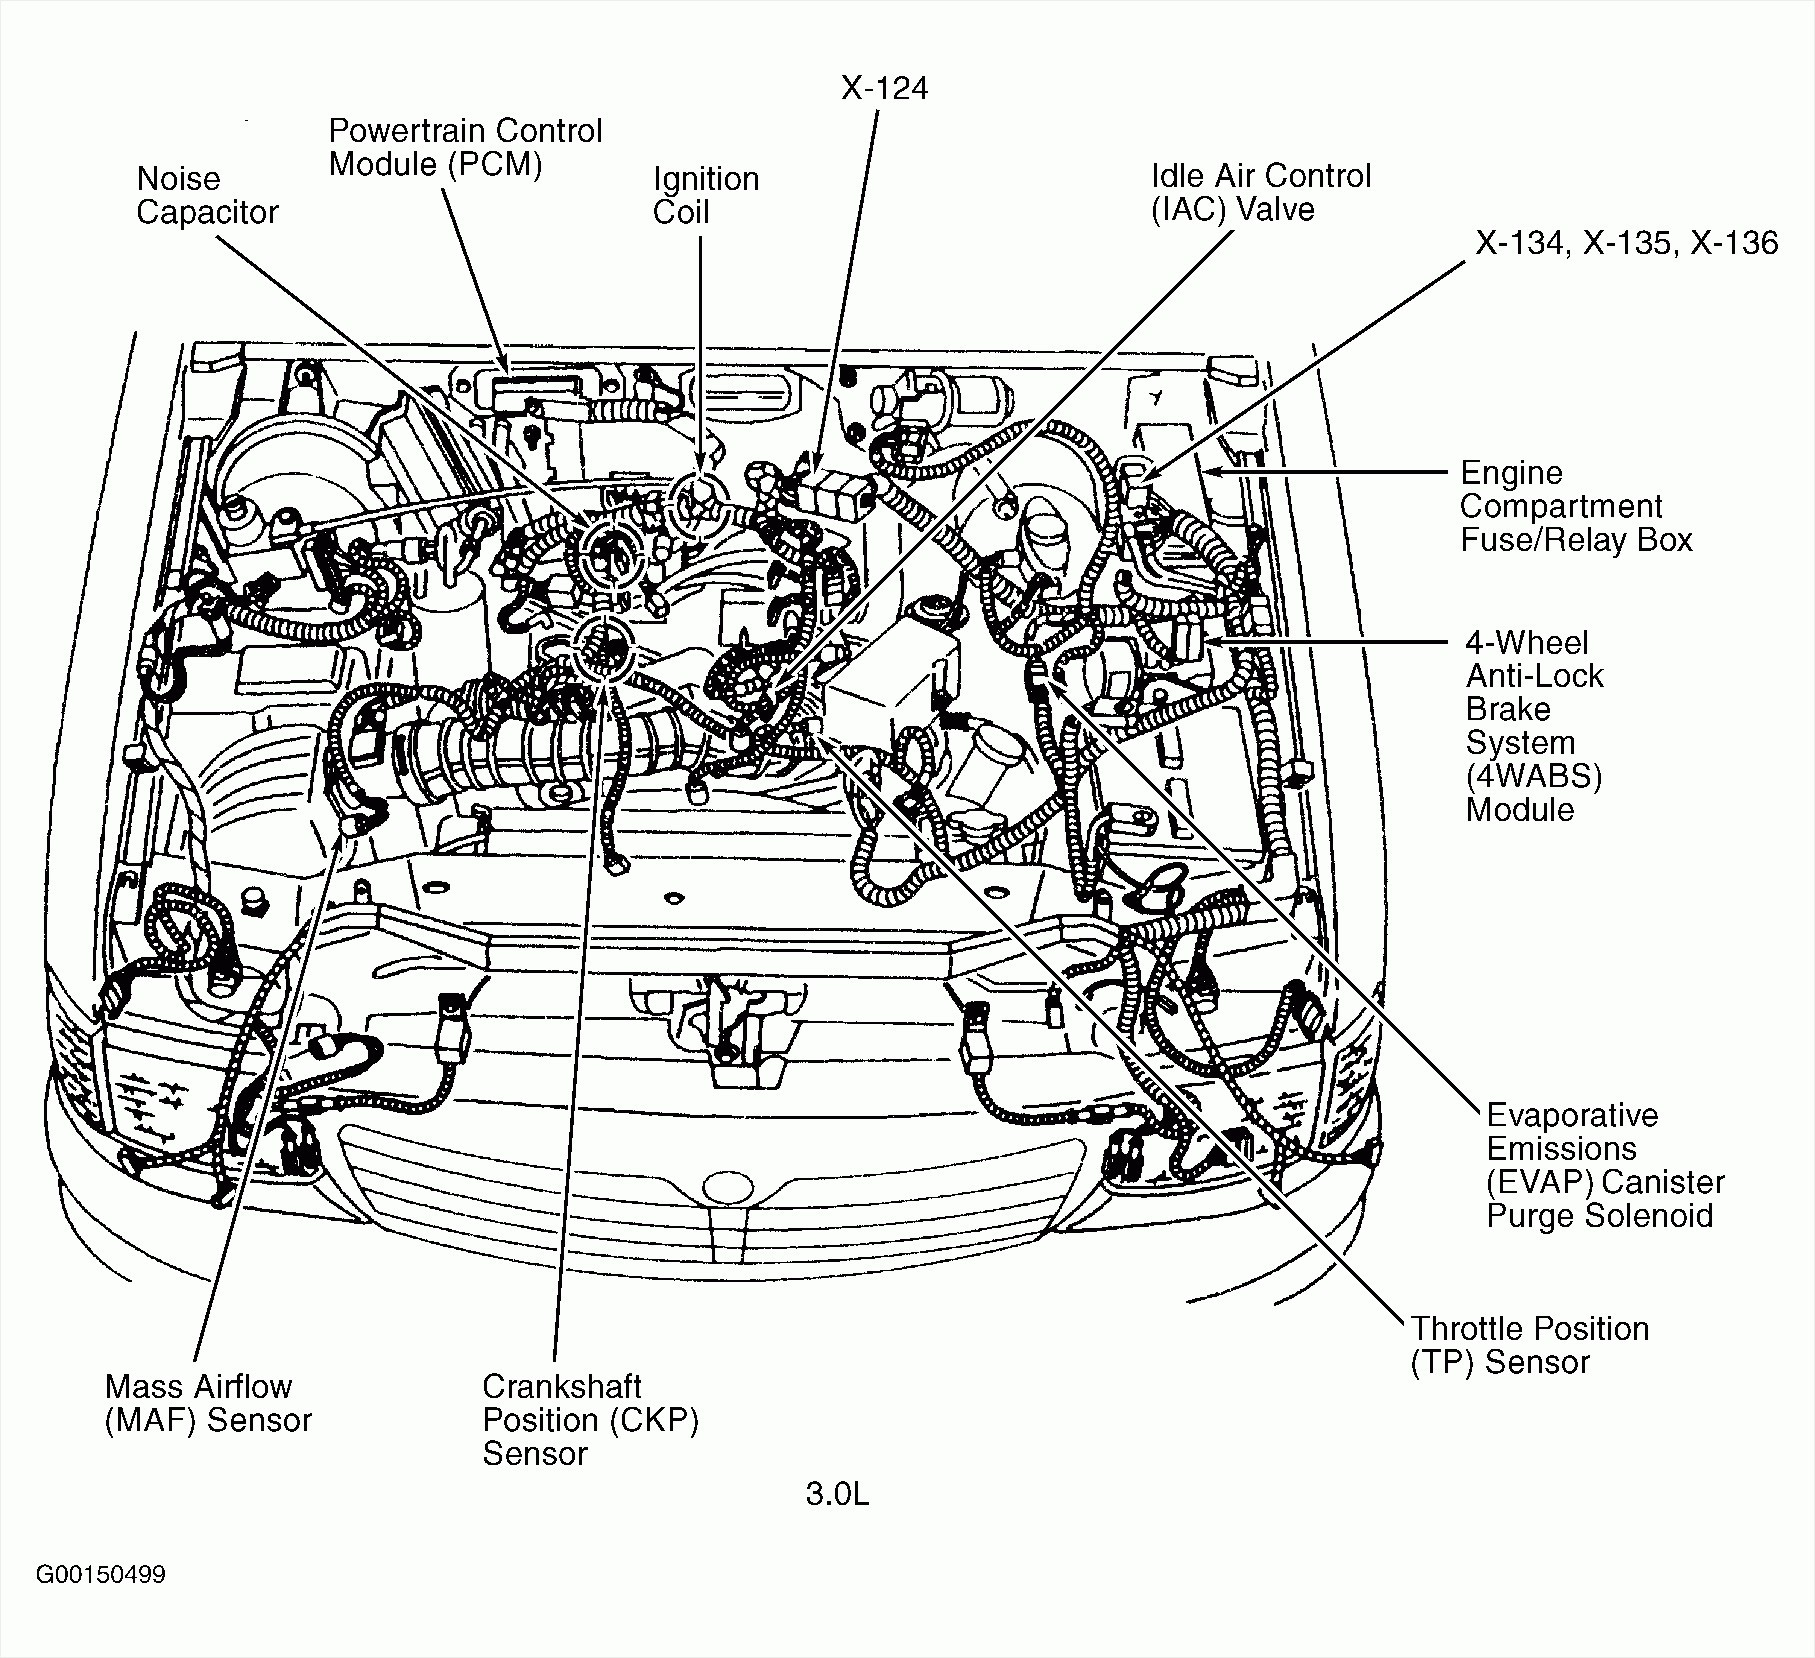 hight resolution of 2002 chevrolet s10 engine diagram wiring diagram topics 2002 chevrolet s10 engine diagram